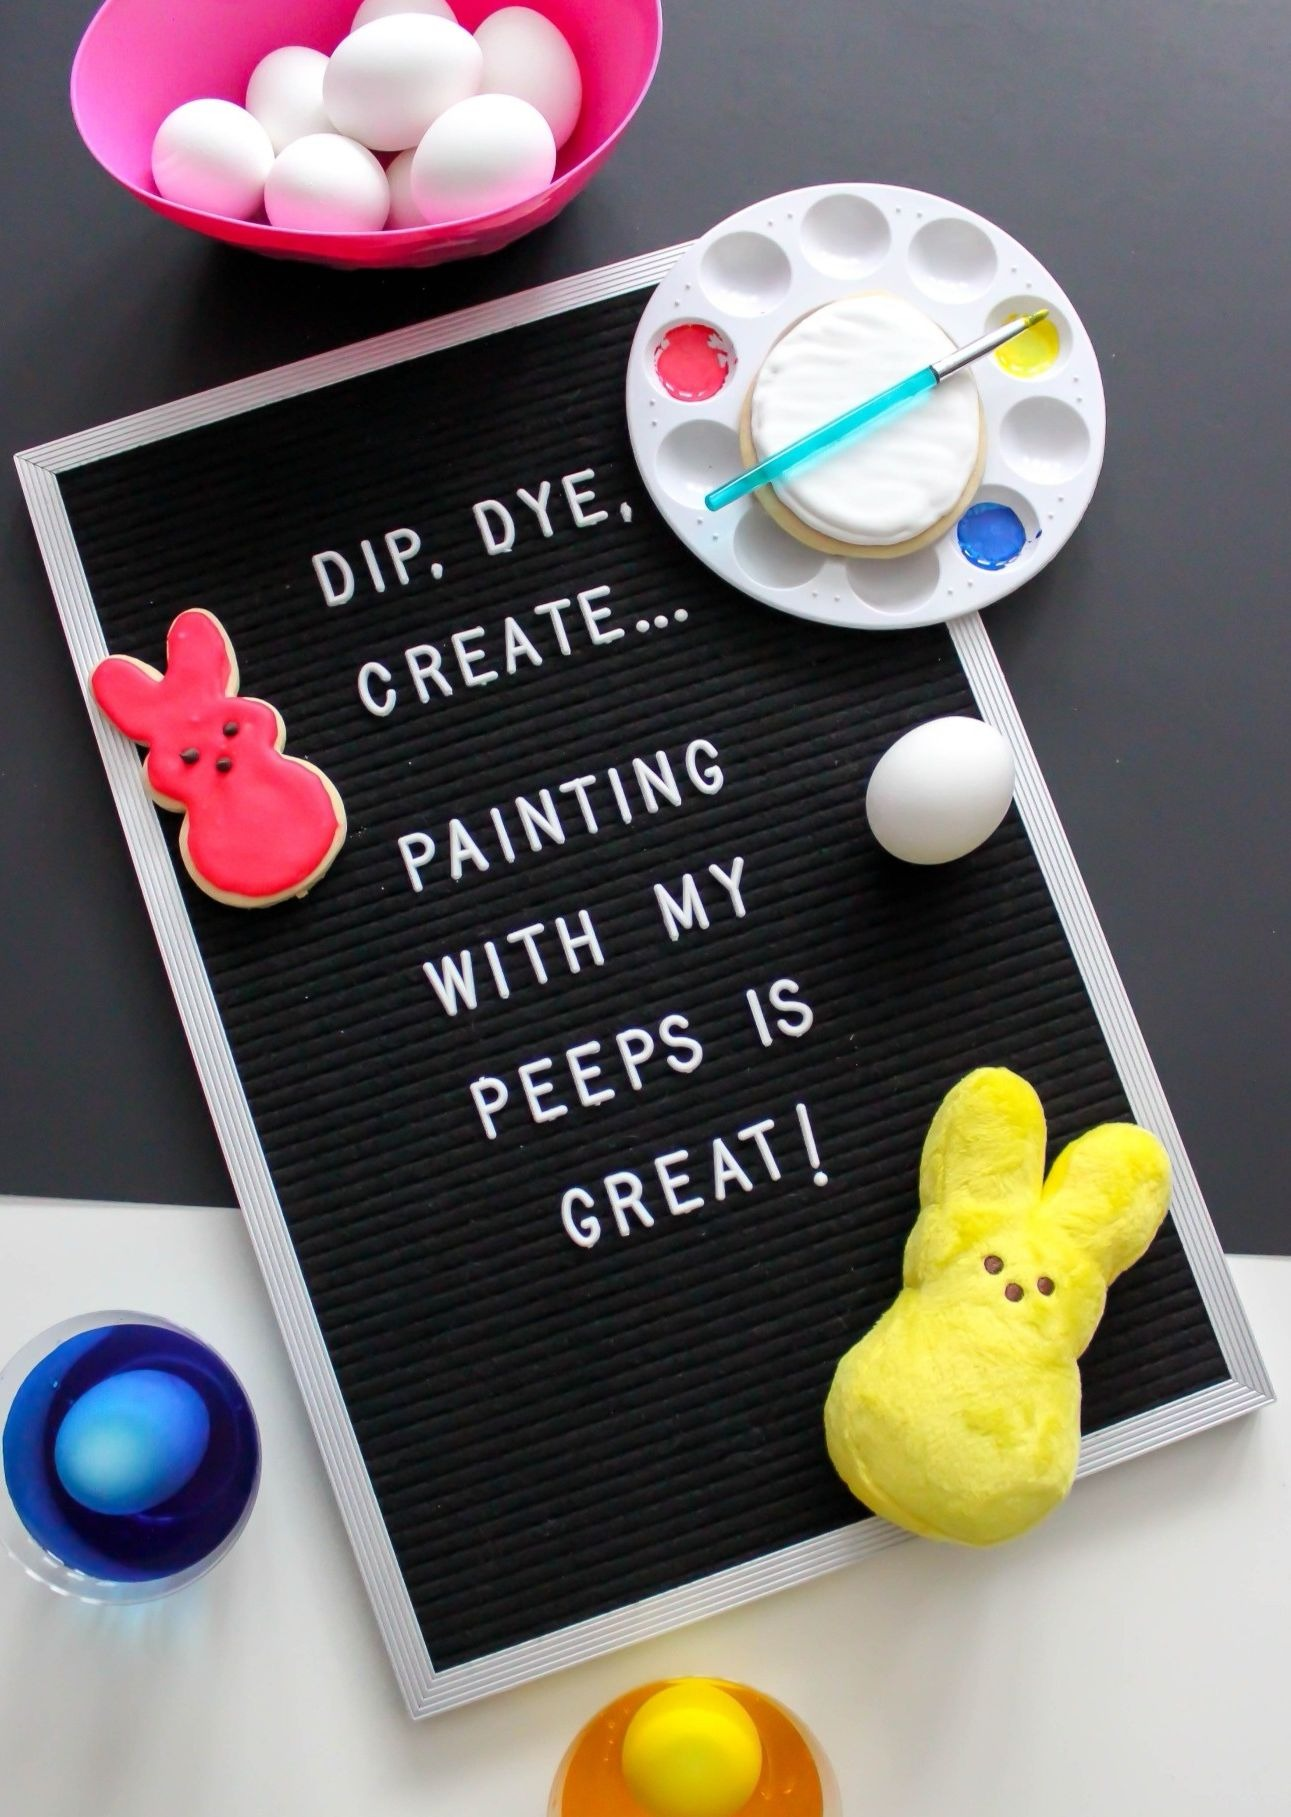 Easter Peeps Letterboard from Painting with my Peeps Easter Party Styled by Just Add Confetti | Black Twine